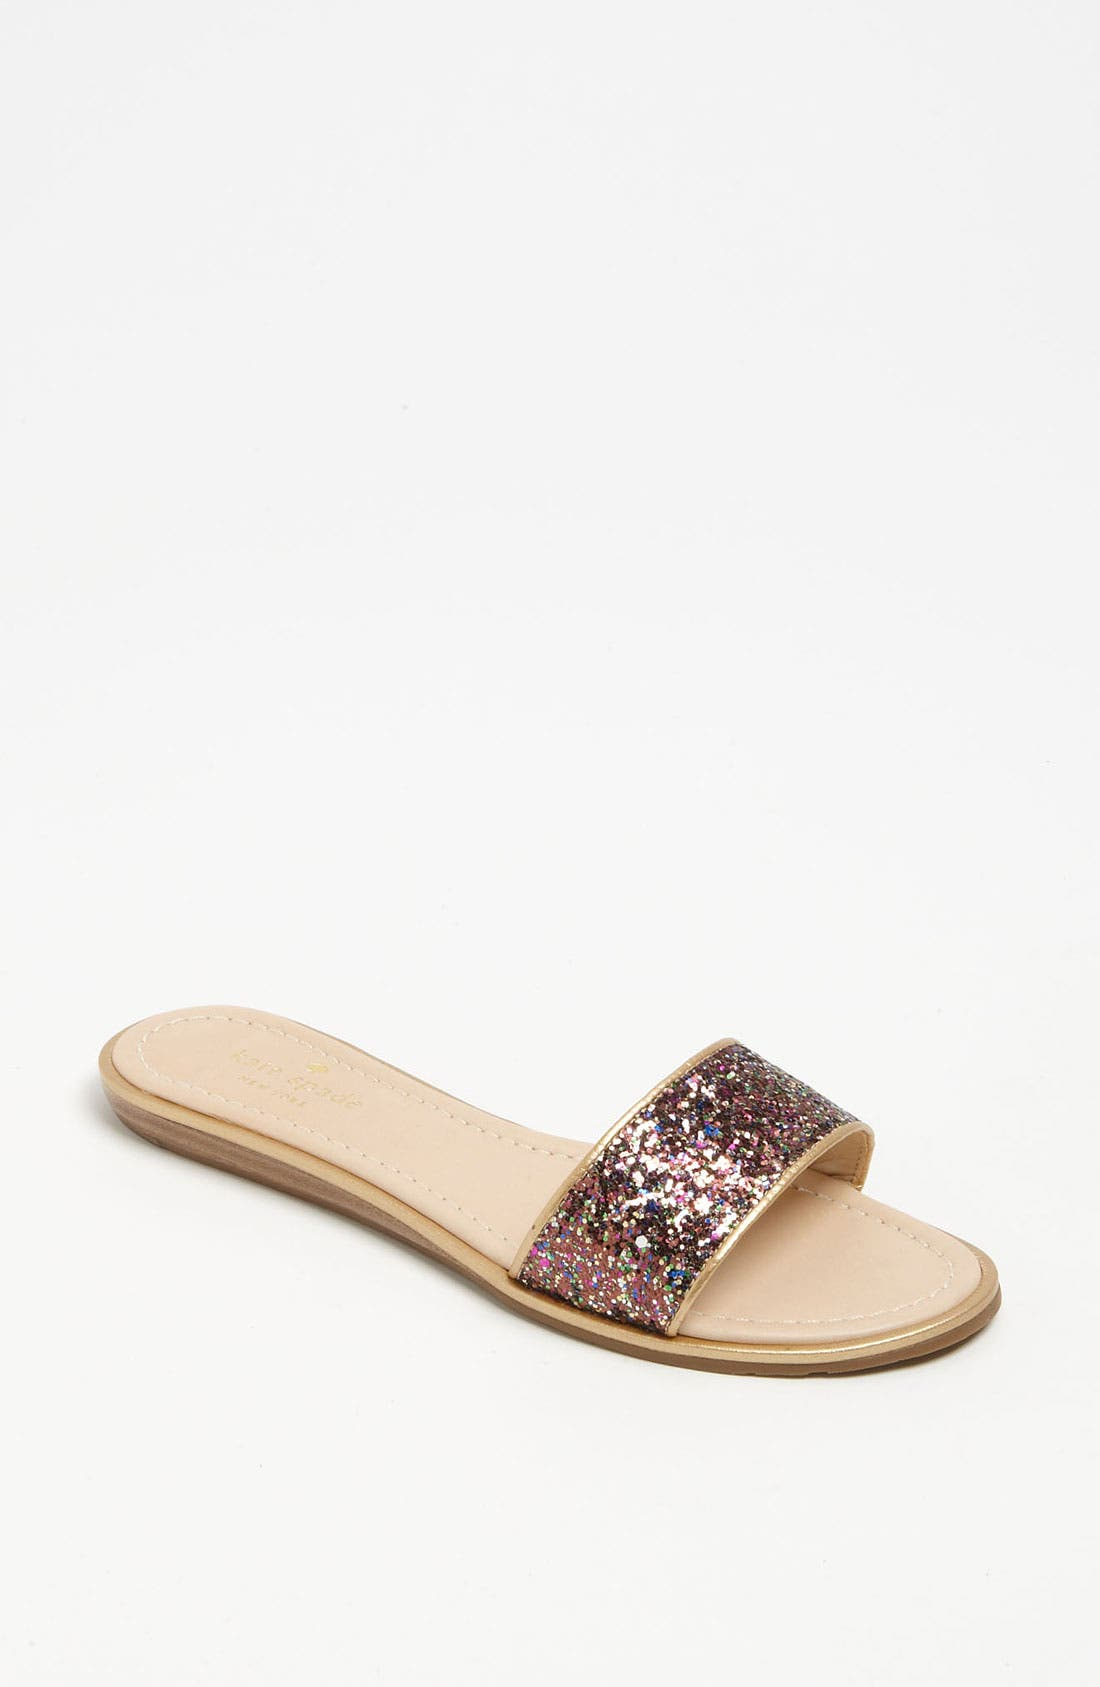 Main Image - kate spade new york 'tulip' sandal